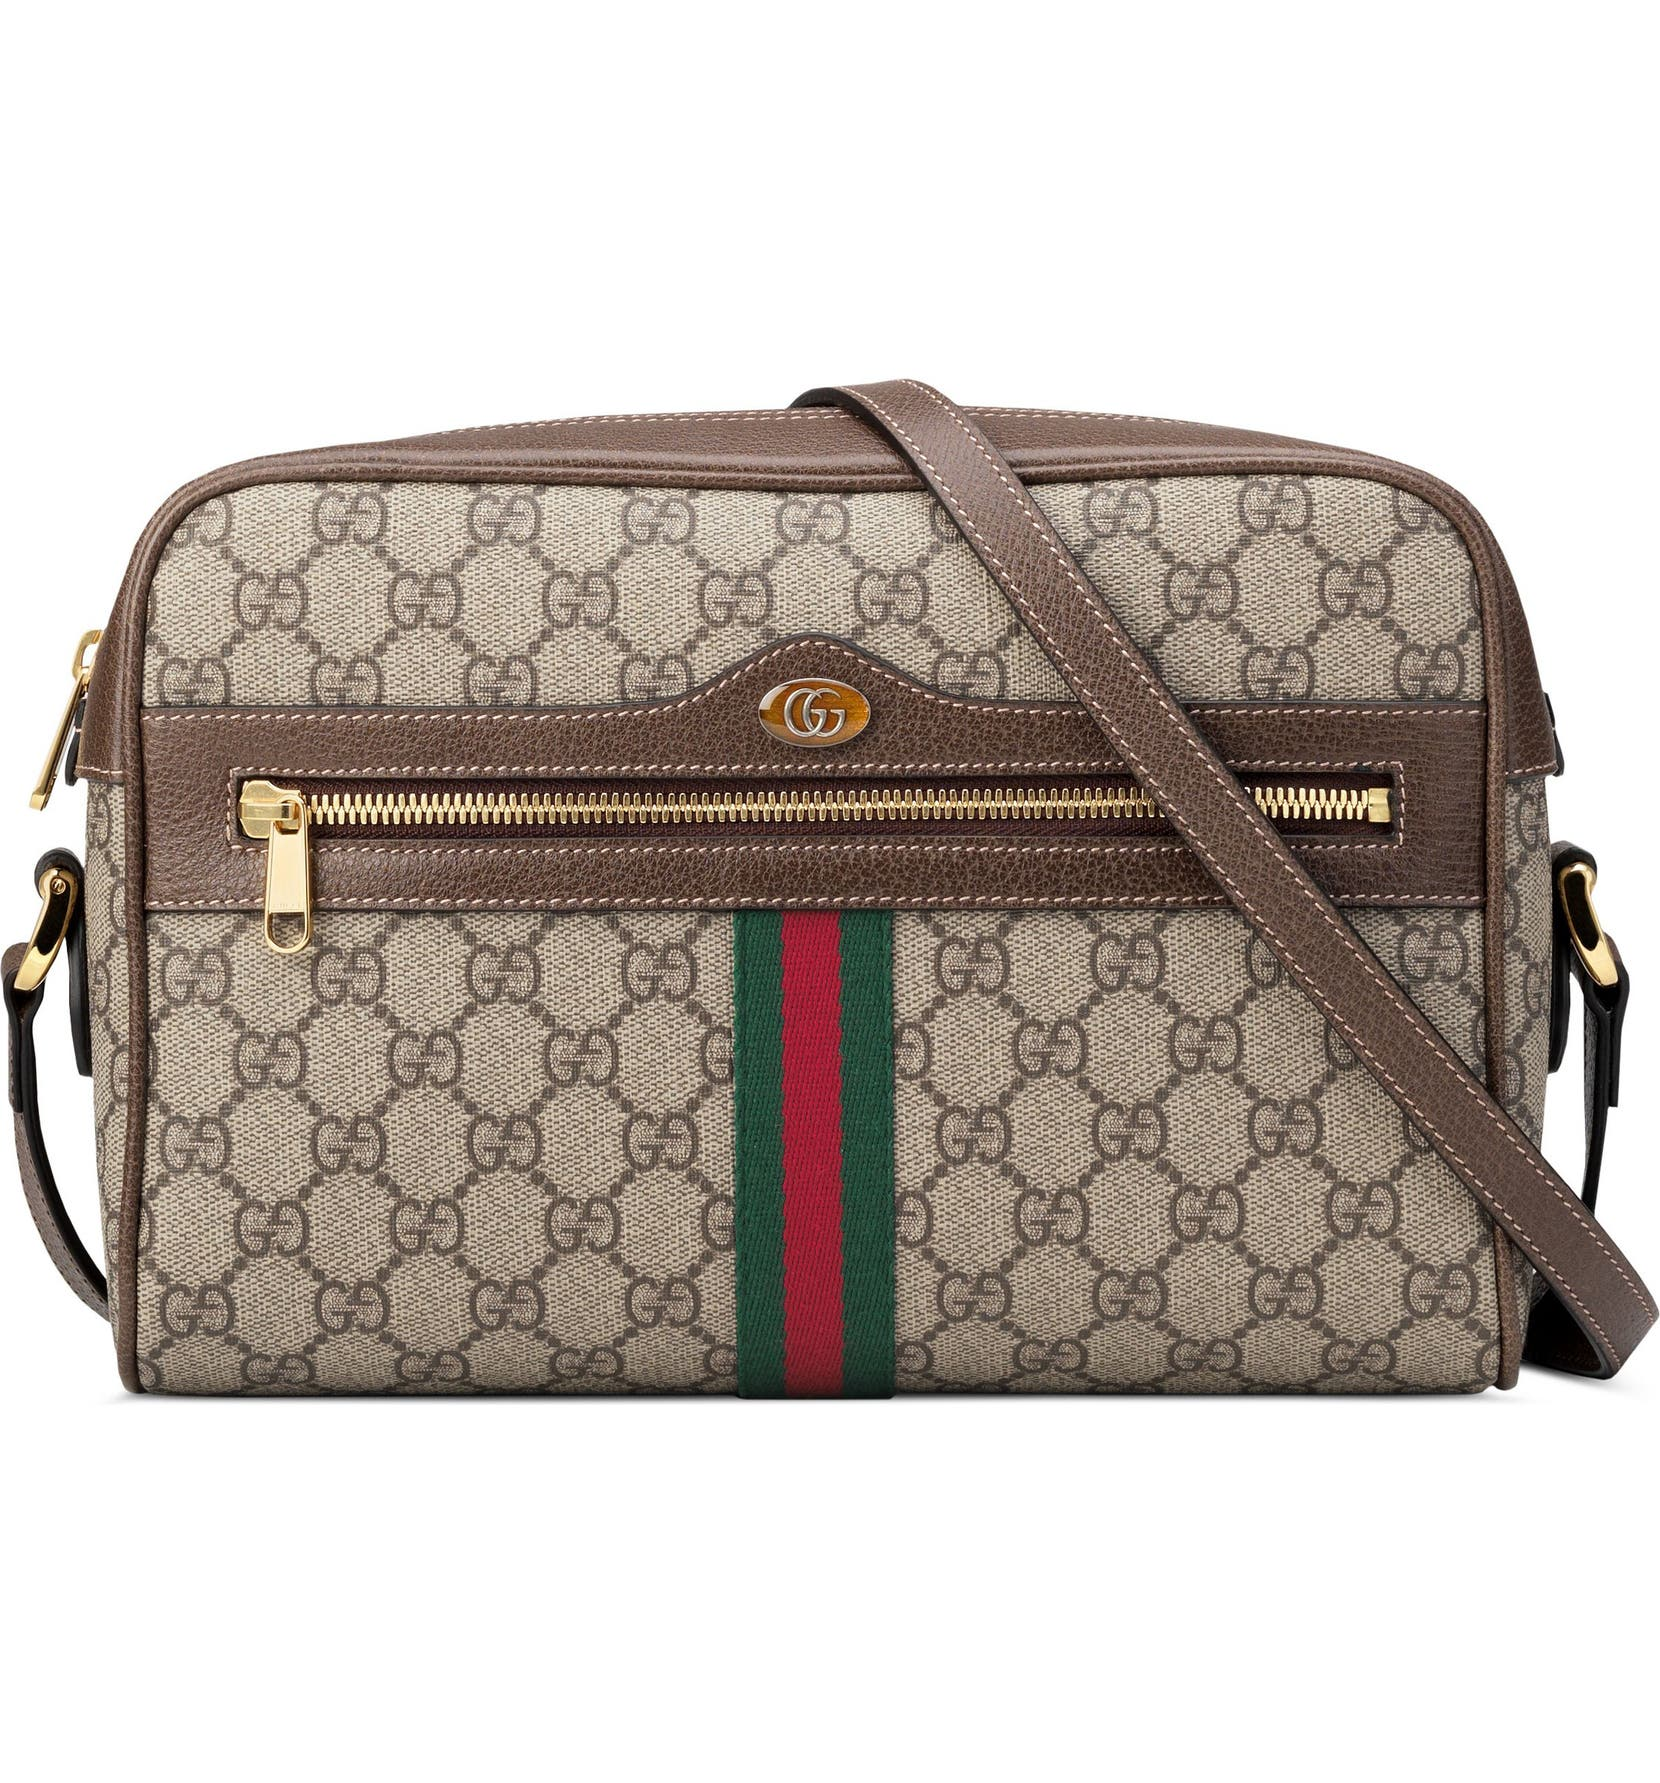 a607227b5a8431 Gucci Ophidia GG Supreme Canvas Crossbody Bag | Nordstrom